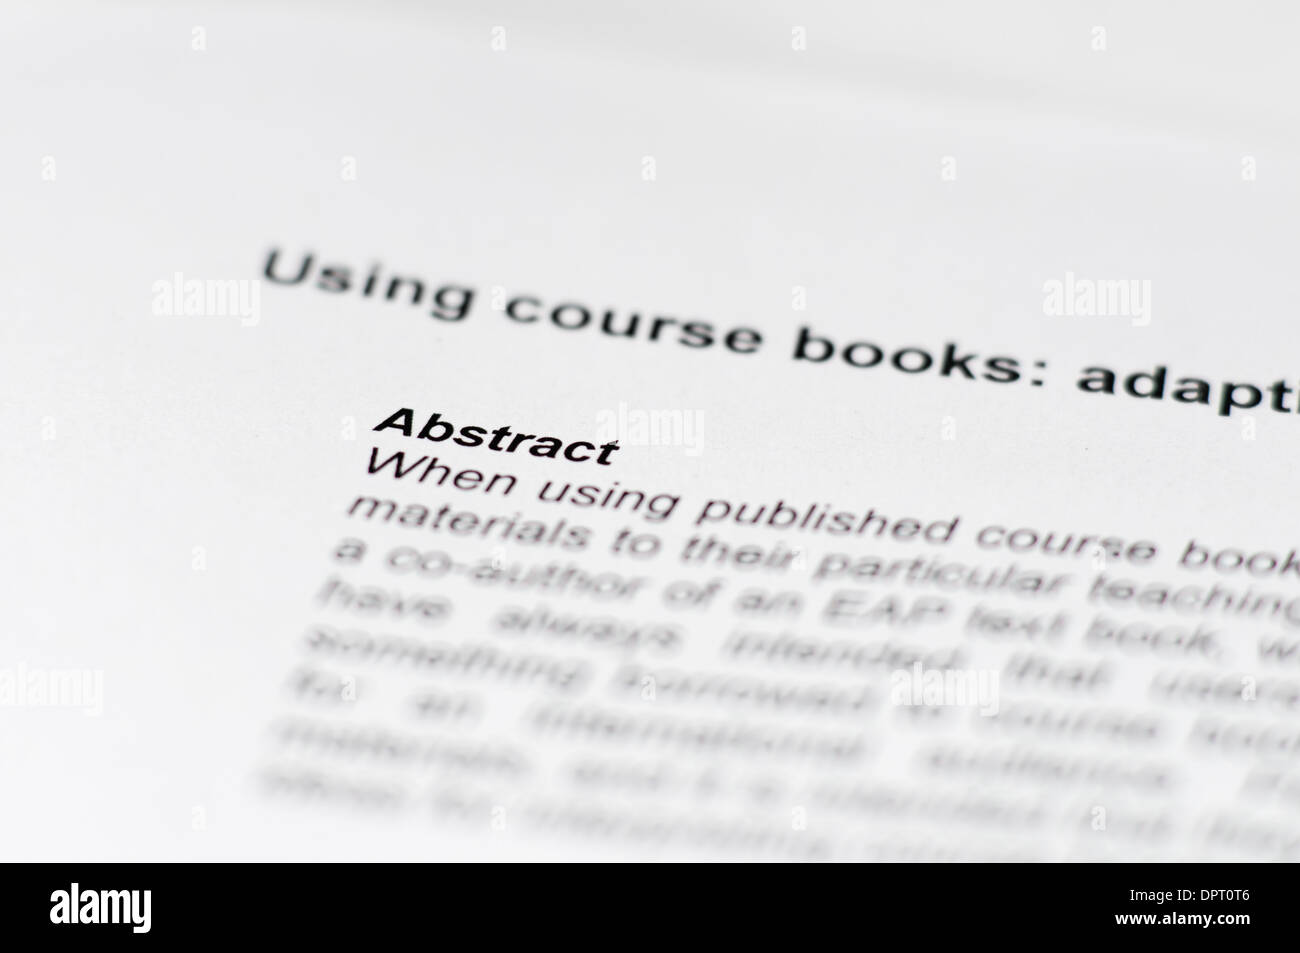 Abstract of an academic paper - Stock Image